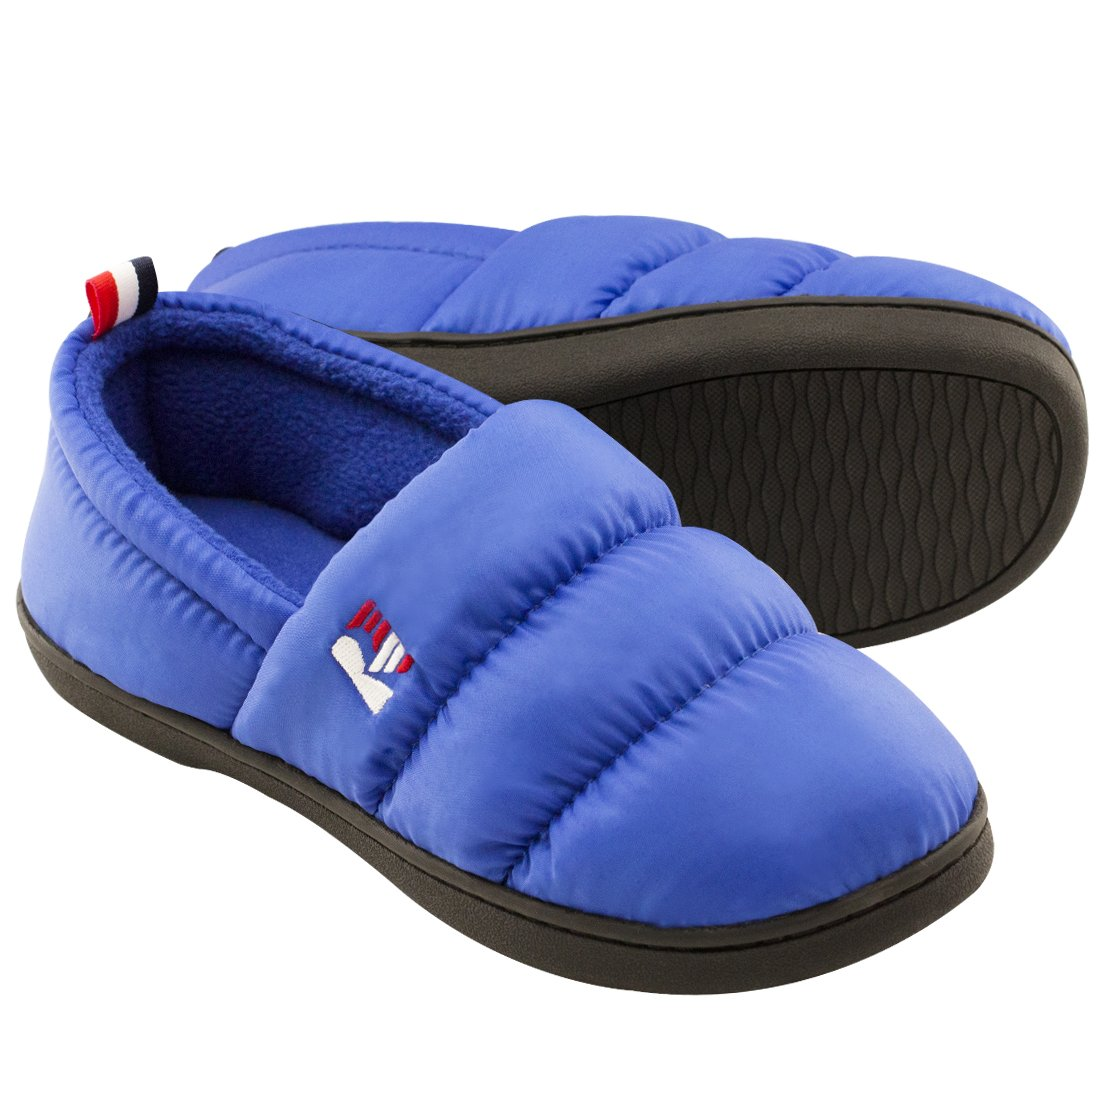 RockDove Women's Down Memory Foam Slippers Warm Fleece Lined Indoor Outdoor House Shoes, Royal Blue, 7-8 B(M) US